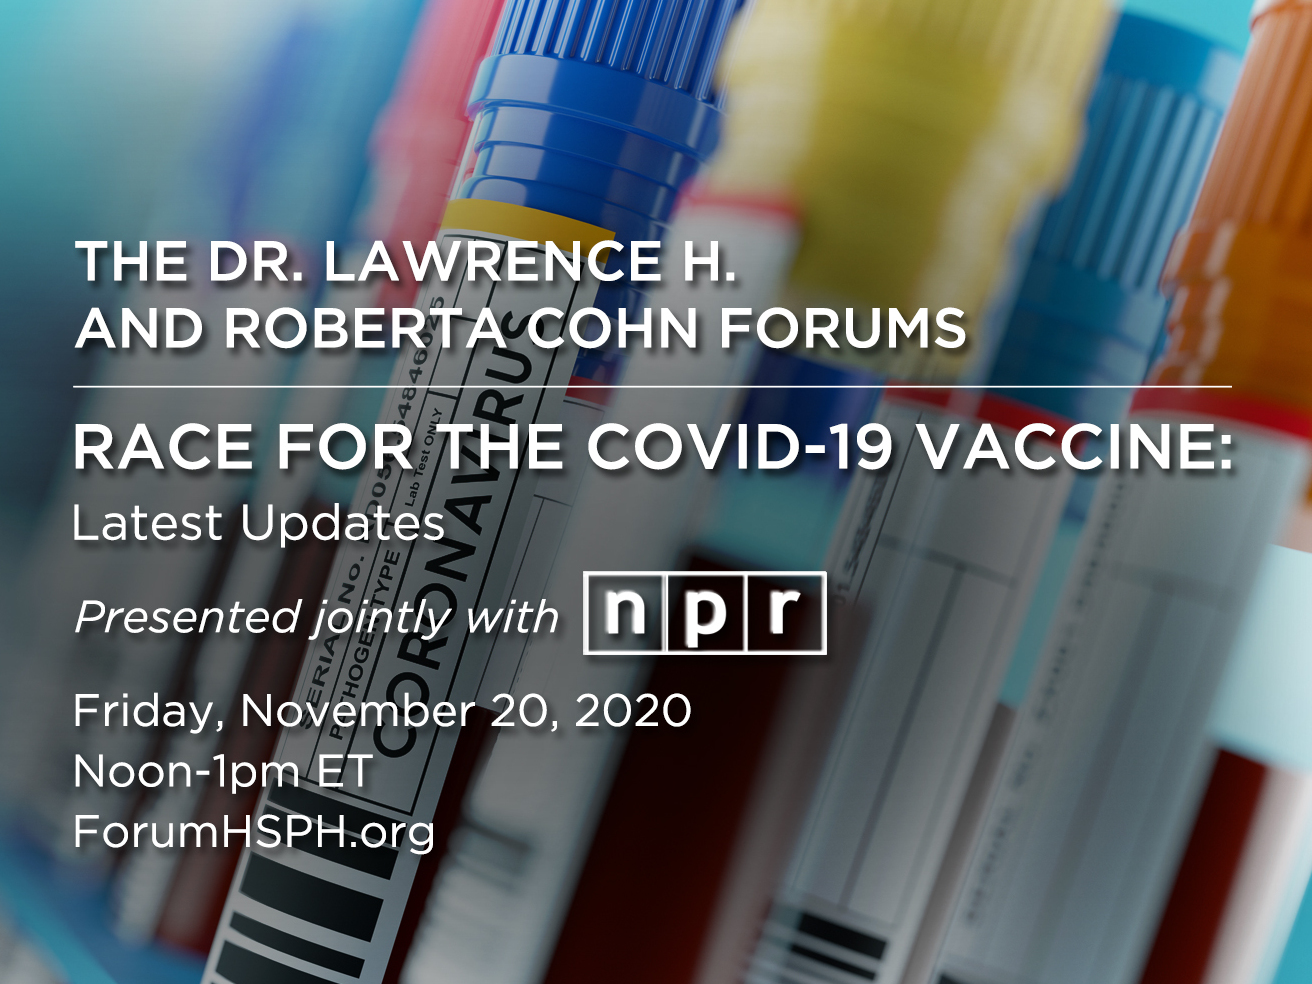 Forum: Race For The COVID-19 Vaccine